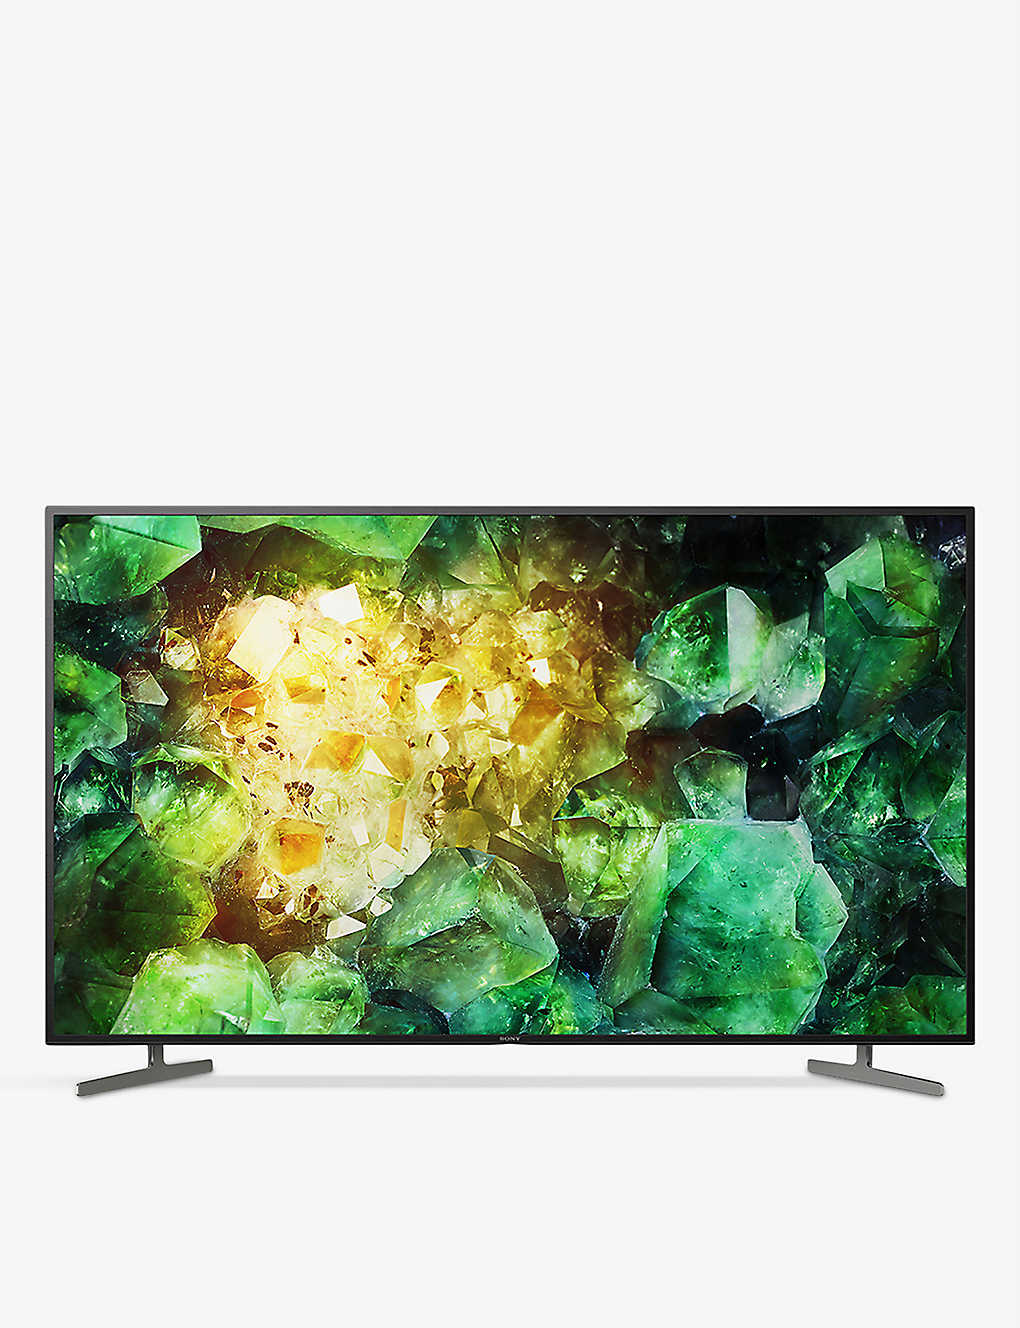 SONY: 55 KD 55XH8196 4K Ultra HD Smart TV